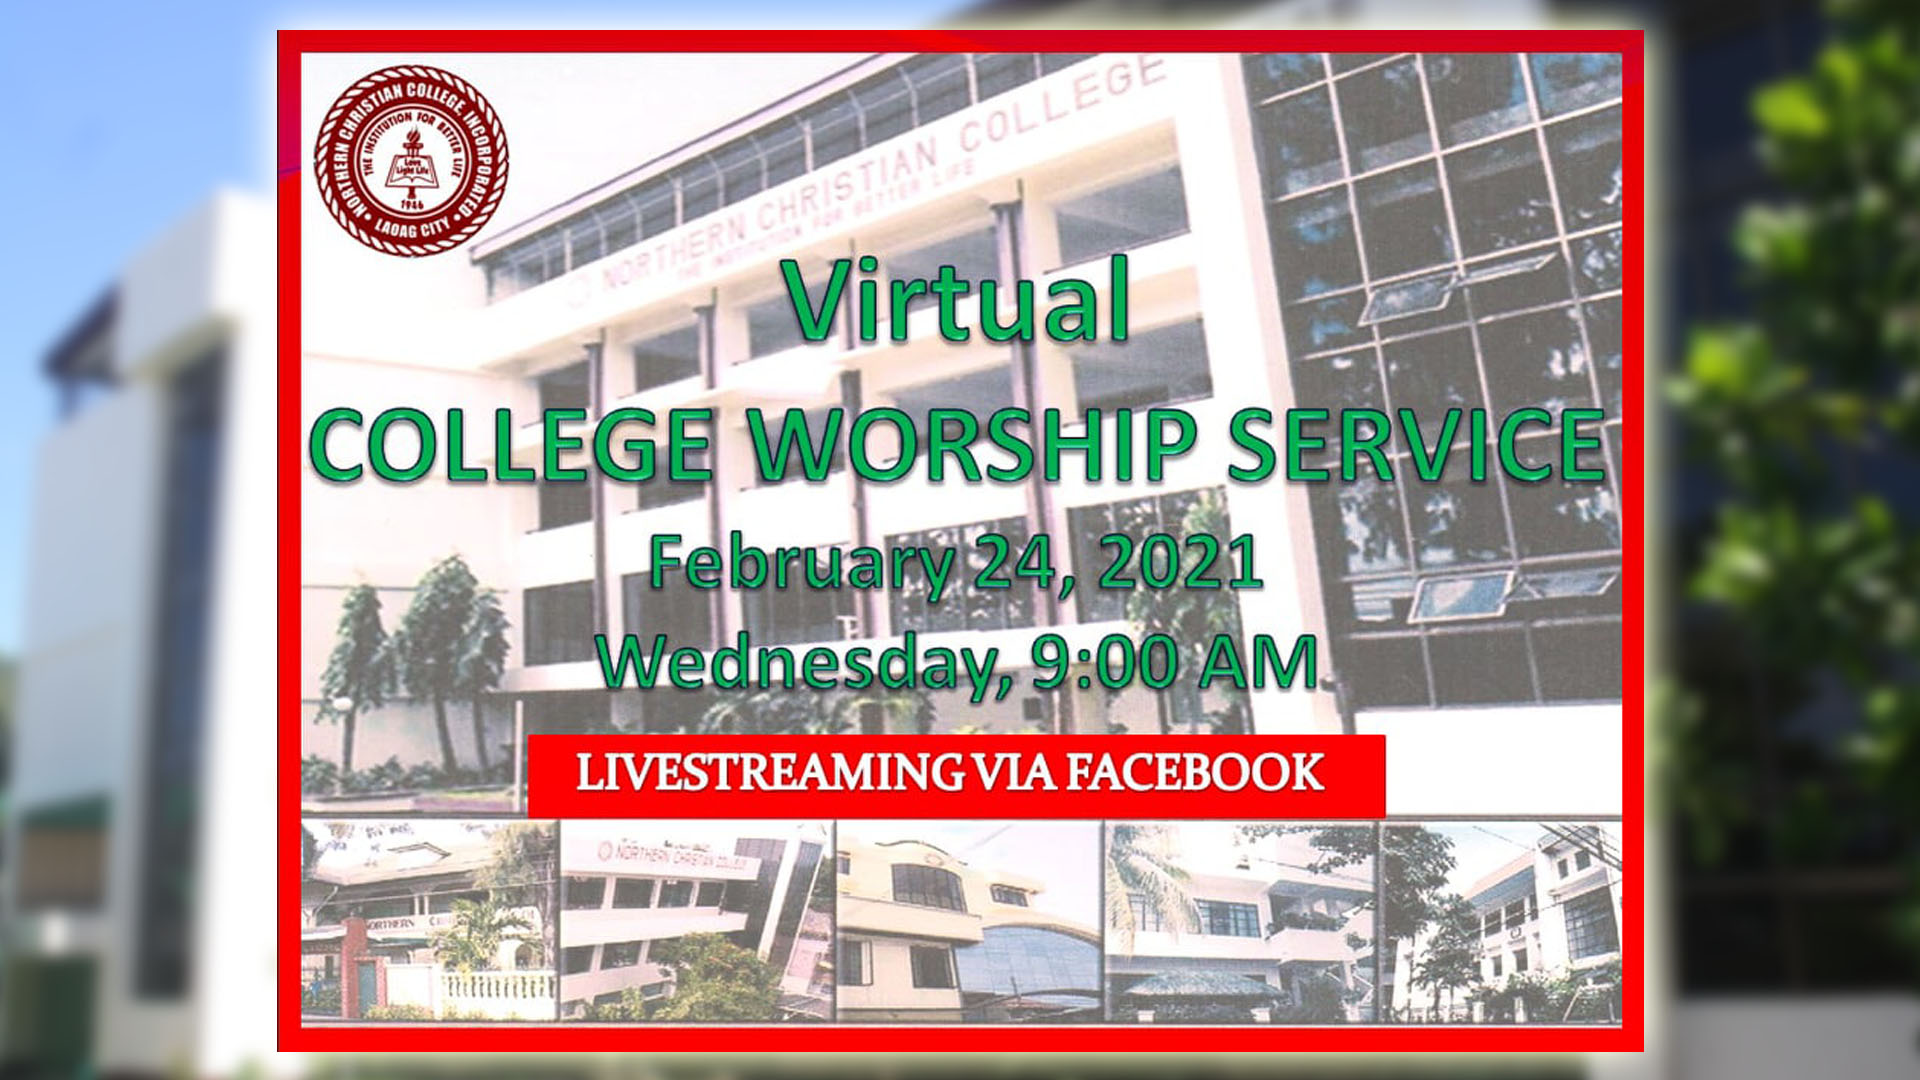 Virtual College Worship Service - February 24, 2021